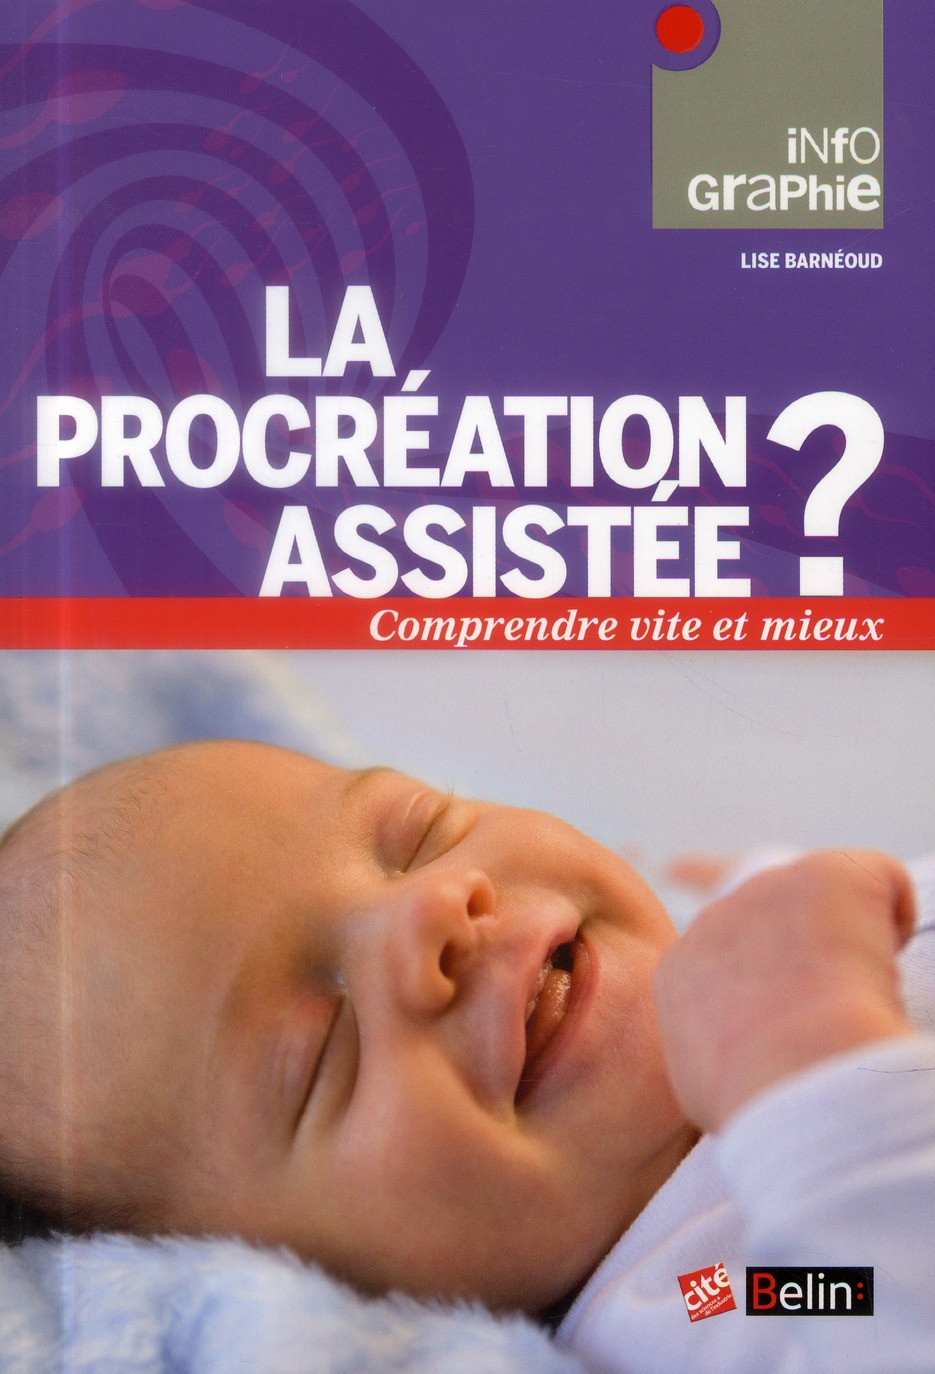 La Procreation Assistee ?